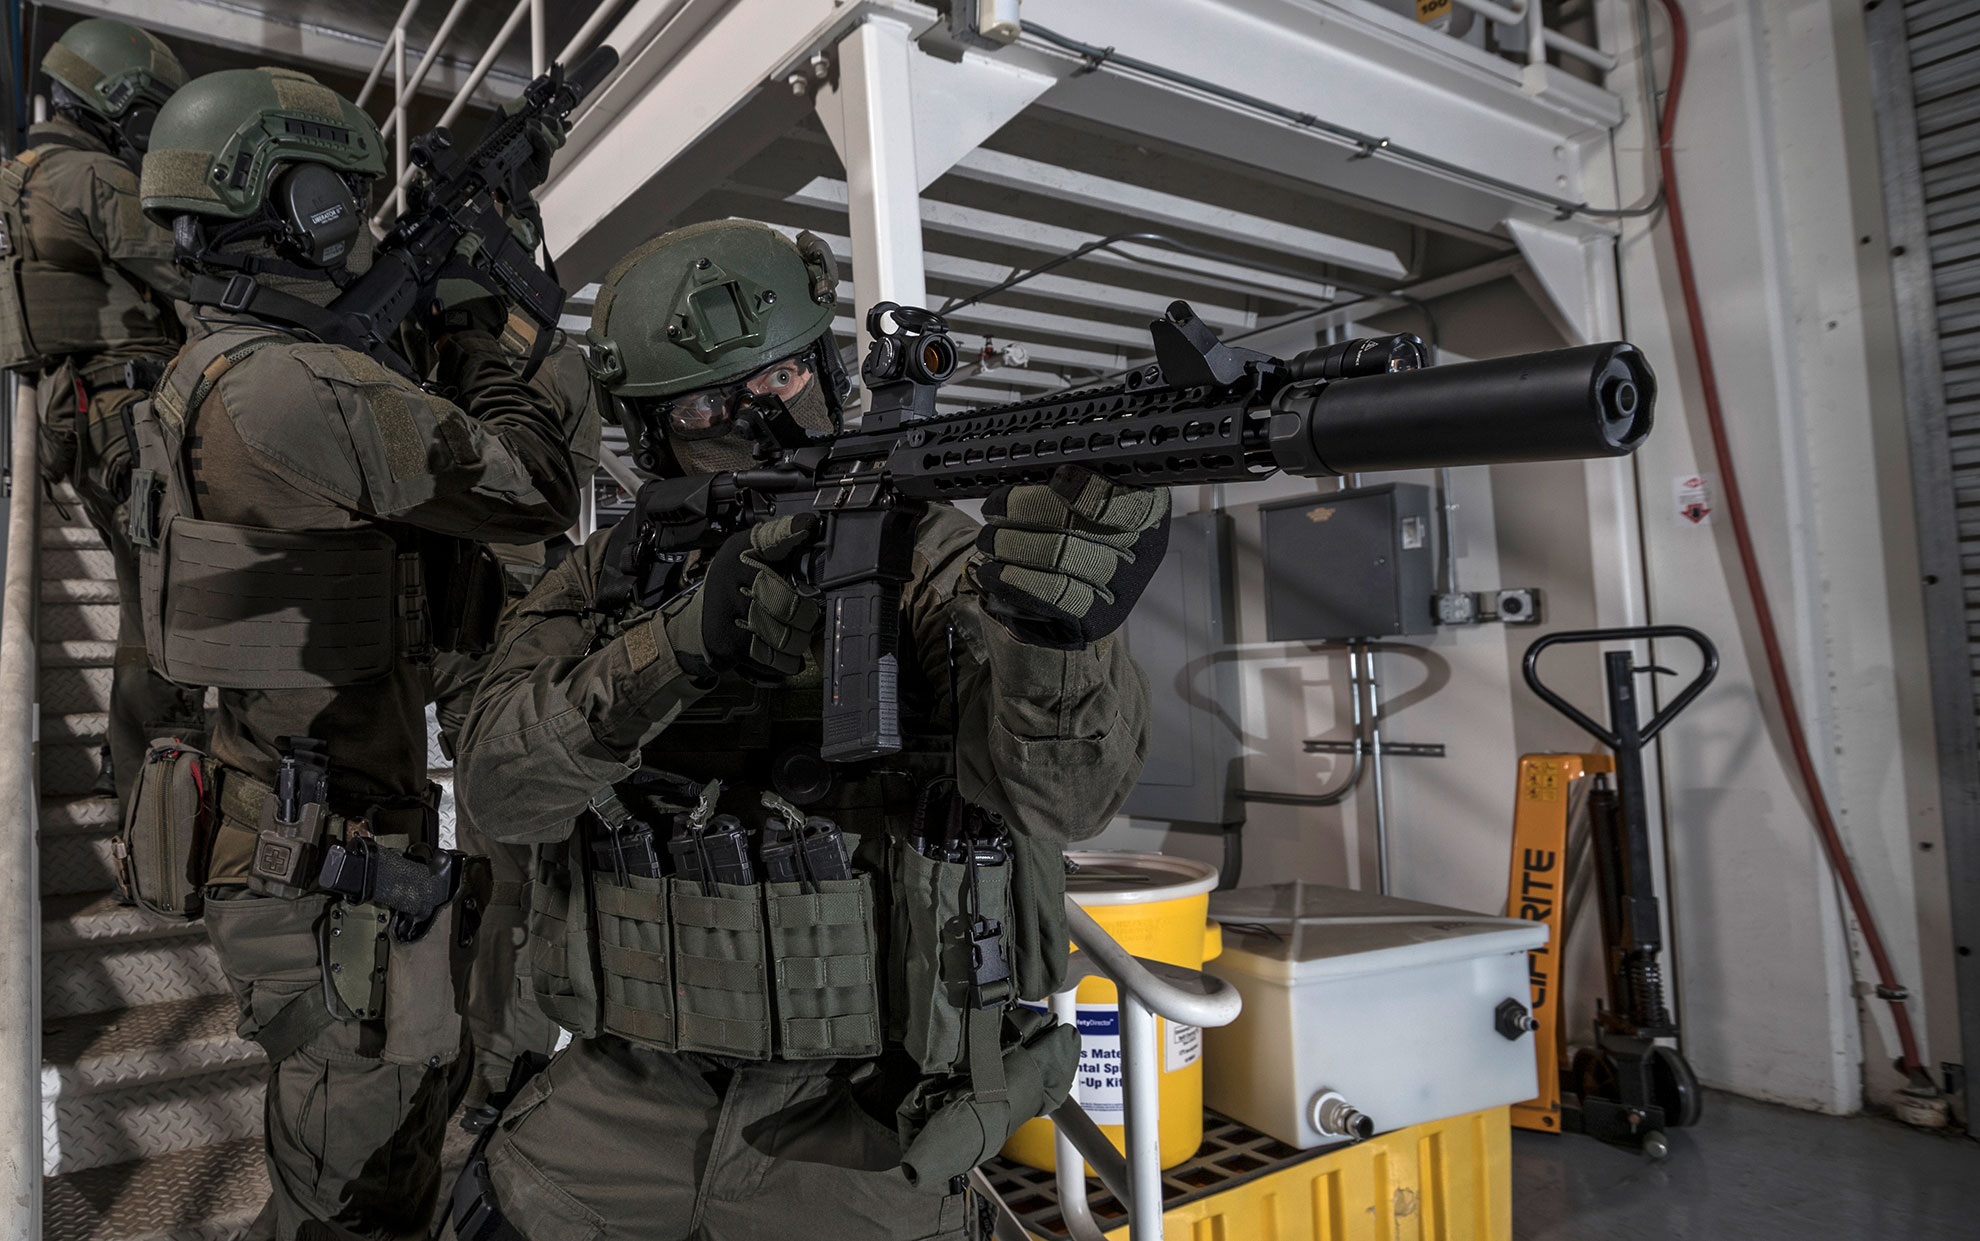 SWAT team members use Dueck Defense Rapid Transition Sights